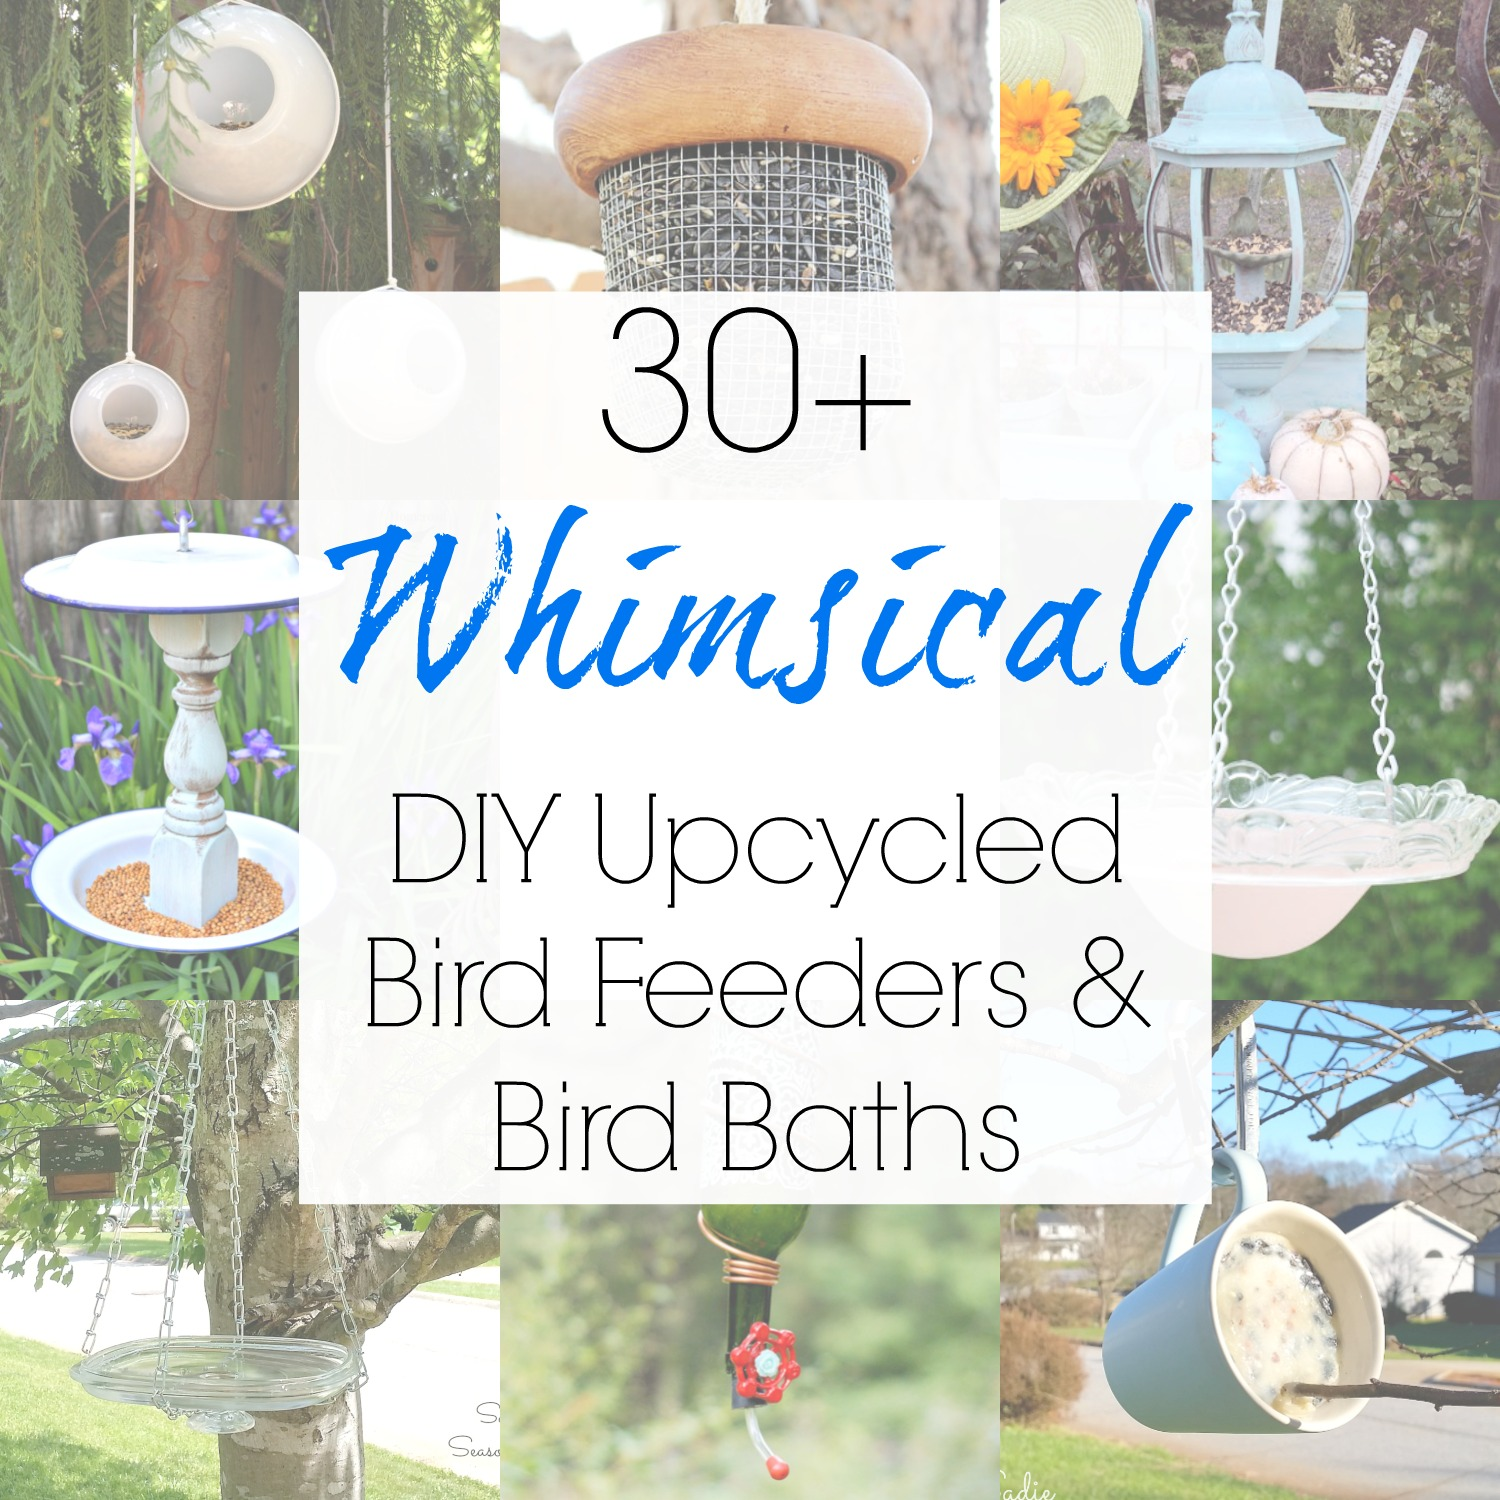 30+ DIY Bird Bath and Upcycled / Repurposed Bird Feeder Ideas